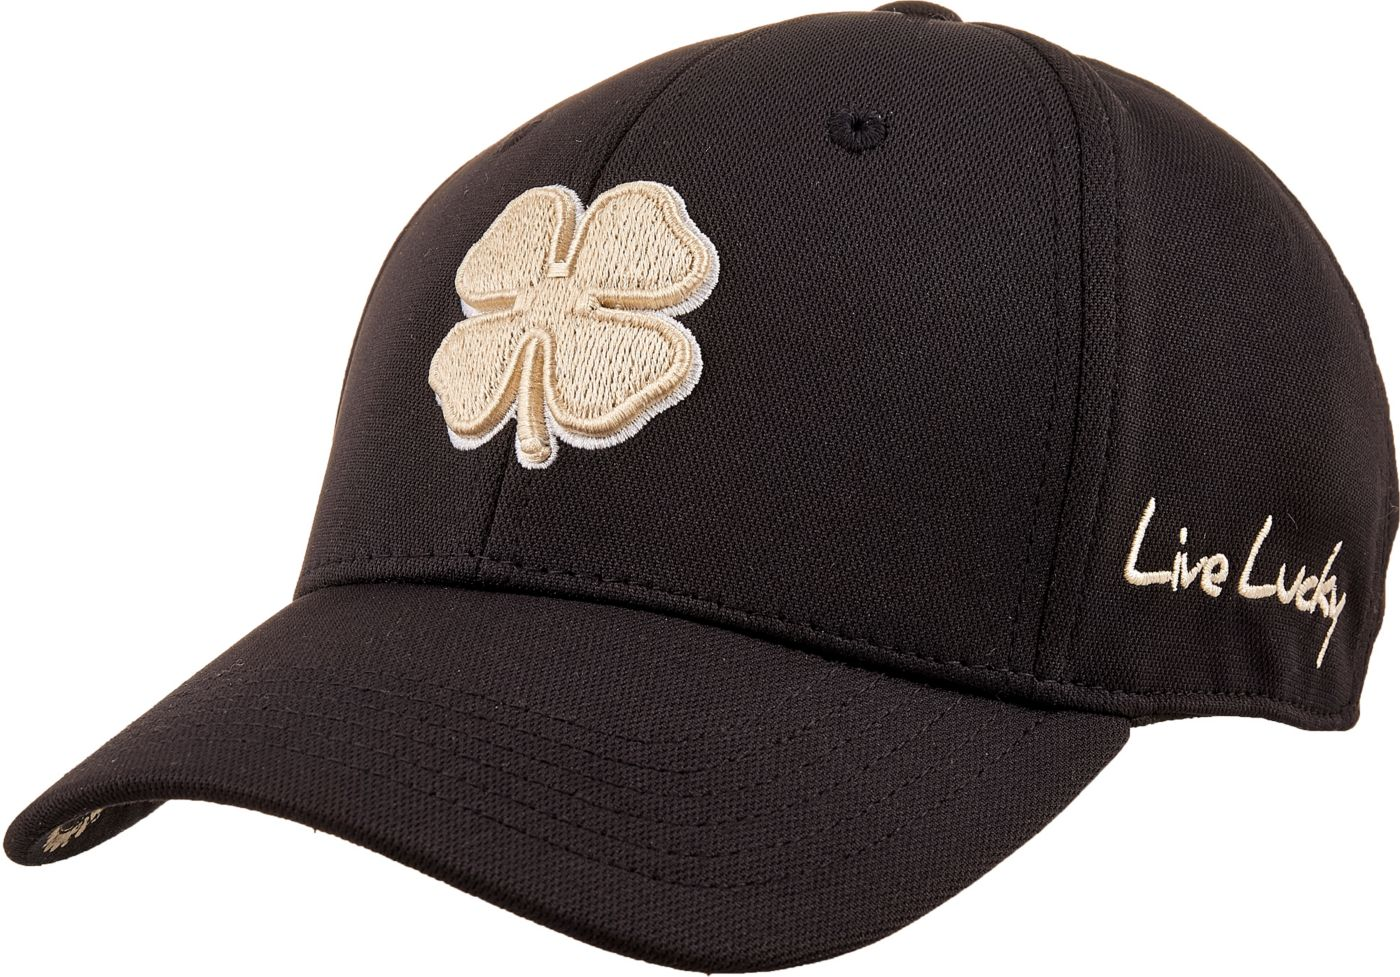 Black Clover Men's Colorado Premium Golf Hat